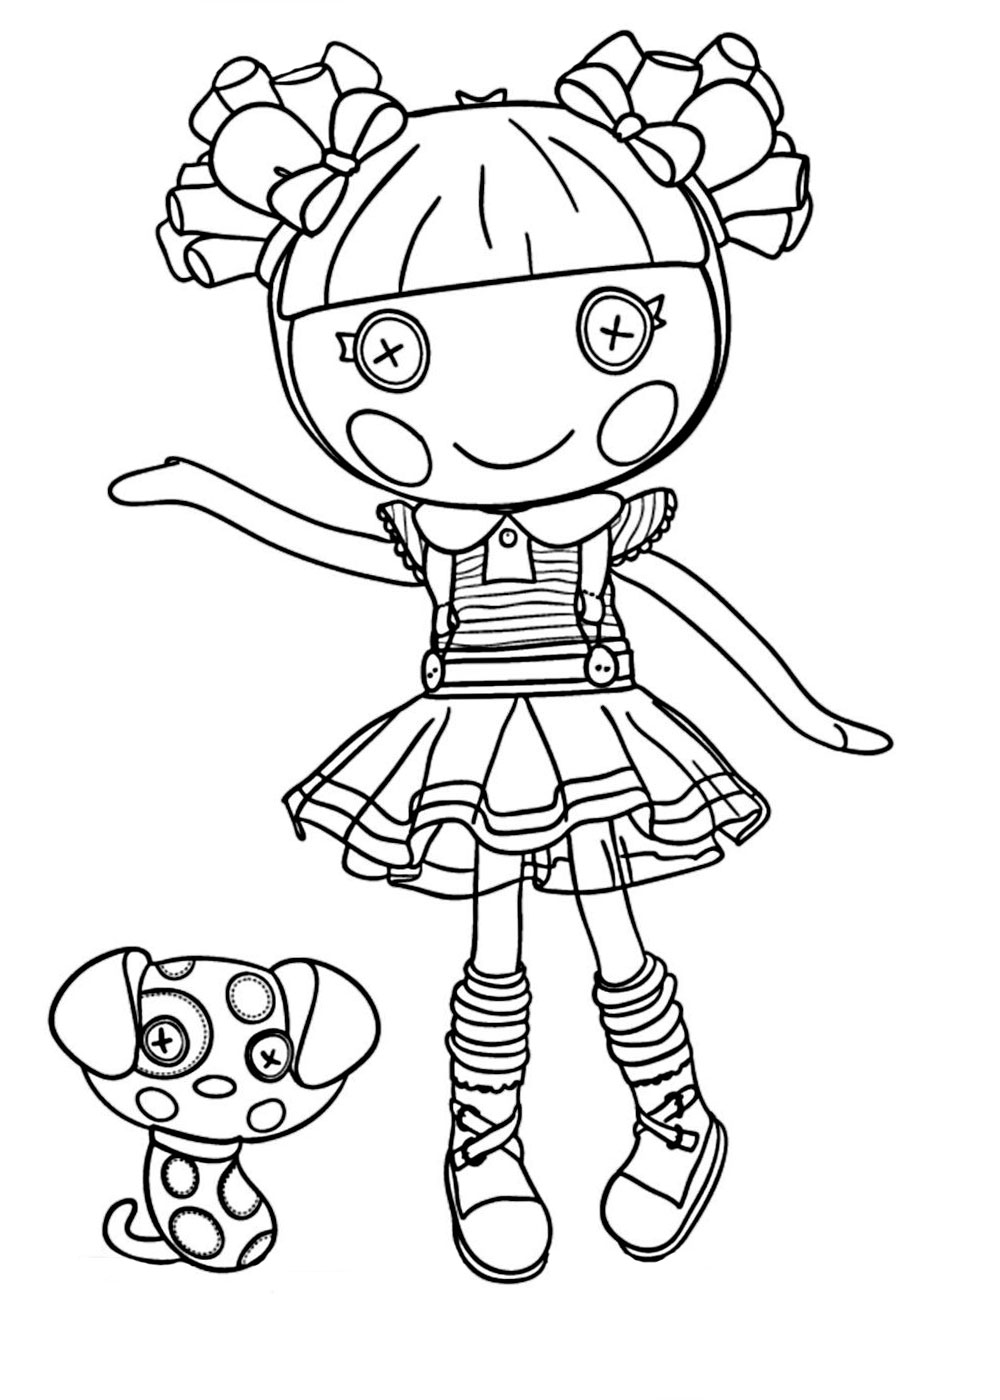 Lalaloopsy Coloring Pages For Girls To Print Free